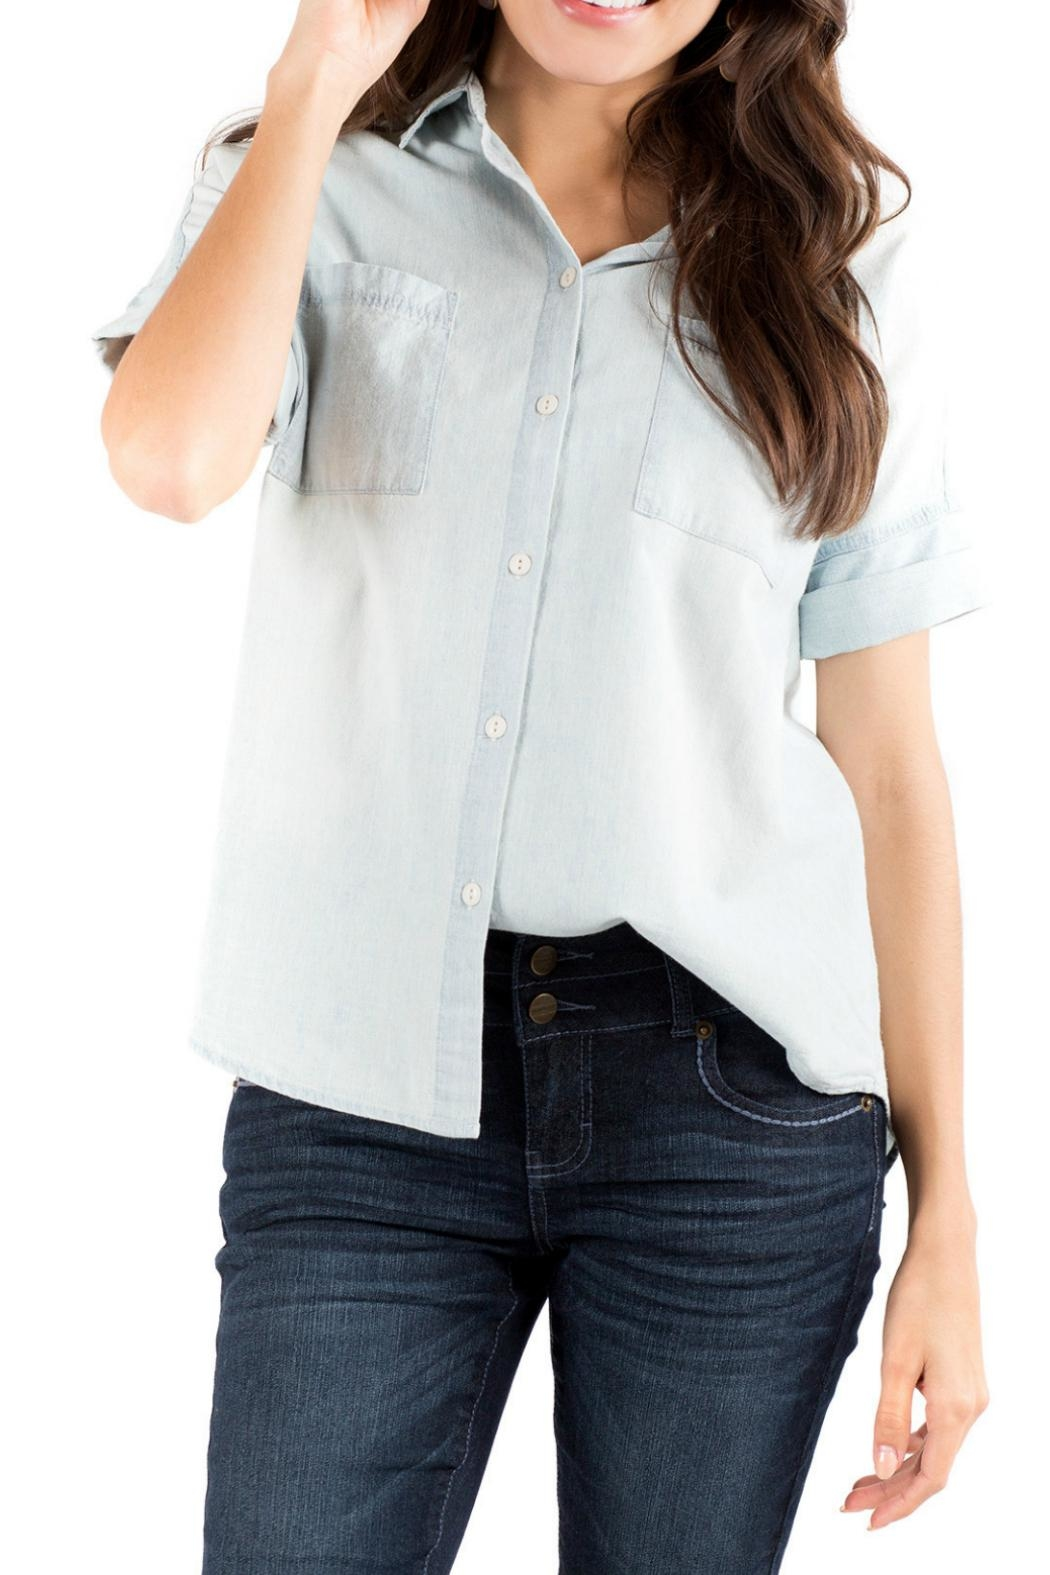 Downeast Basics Casual Chambray Top - Front Cropped Image